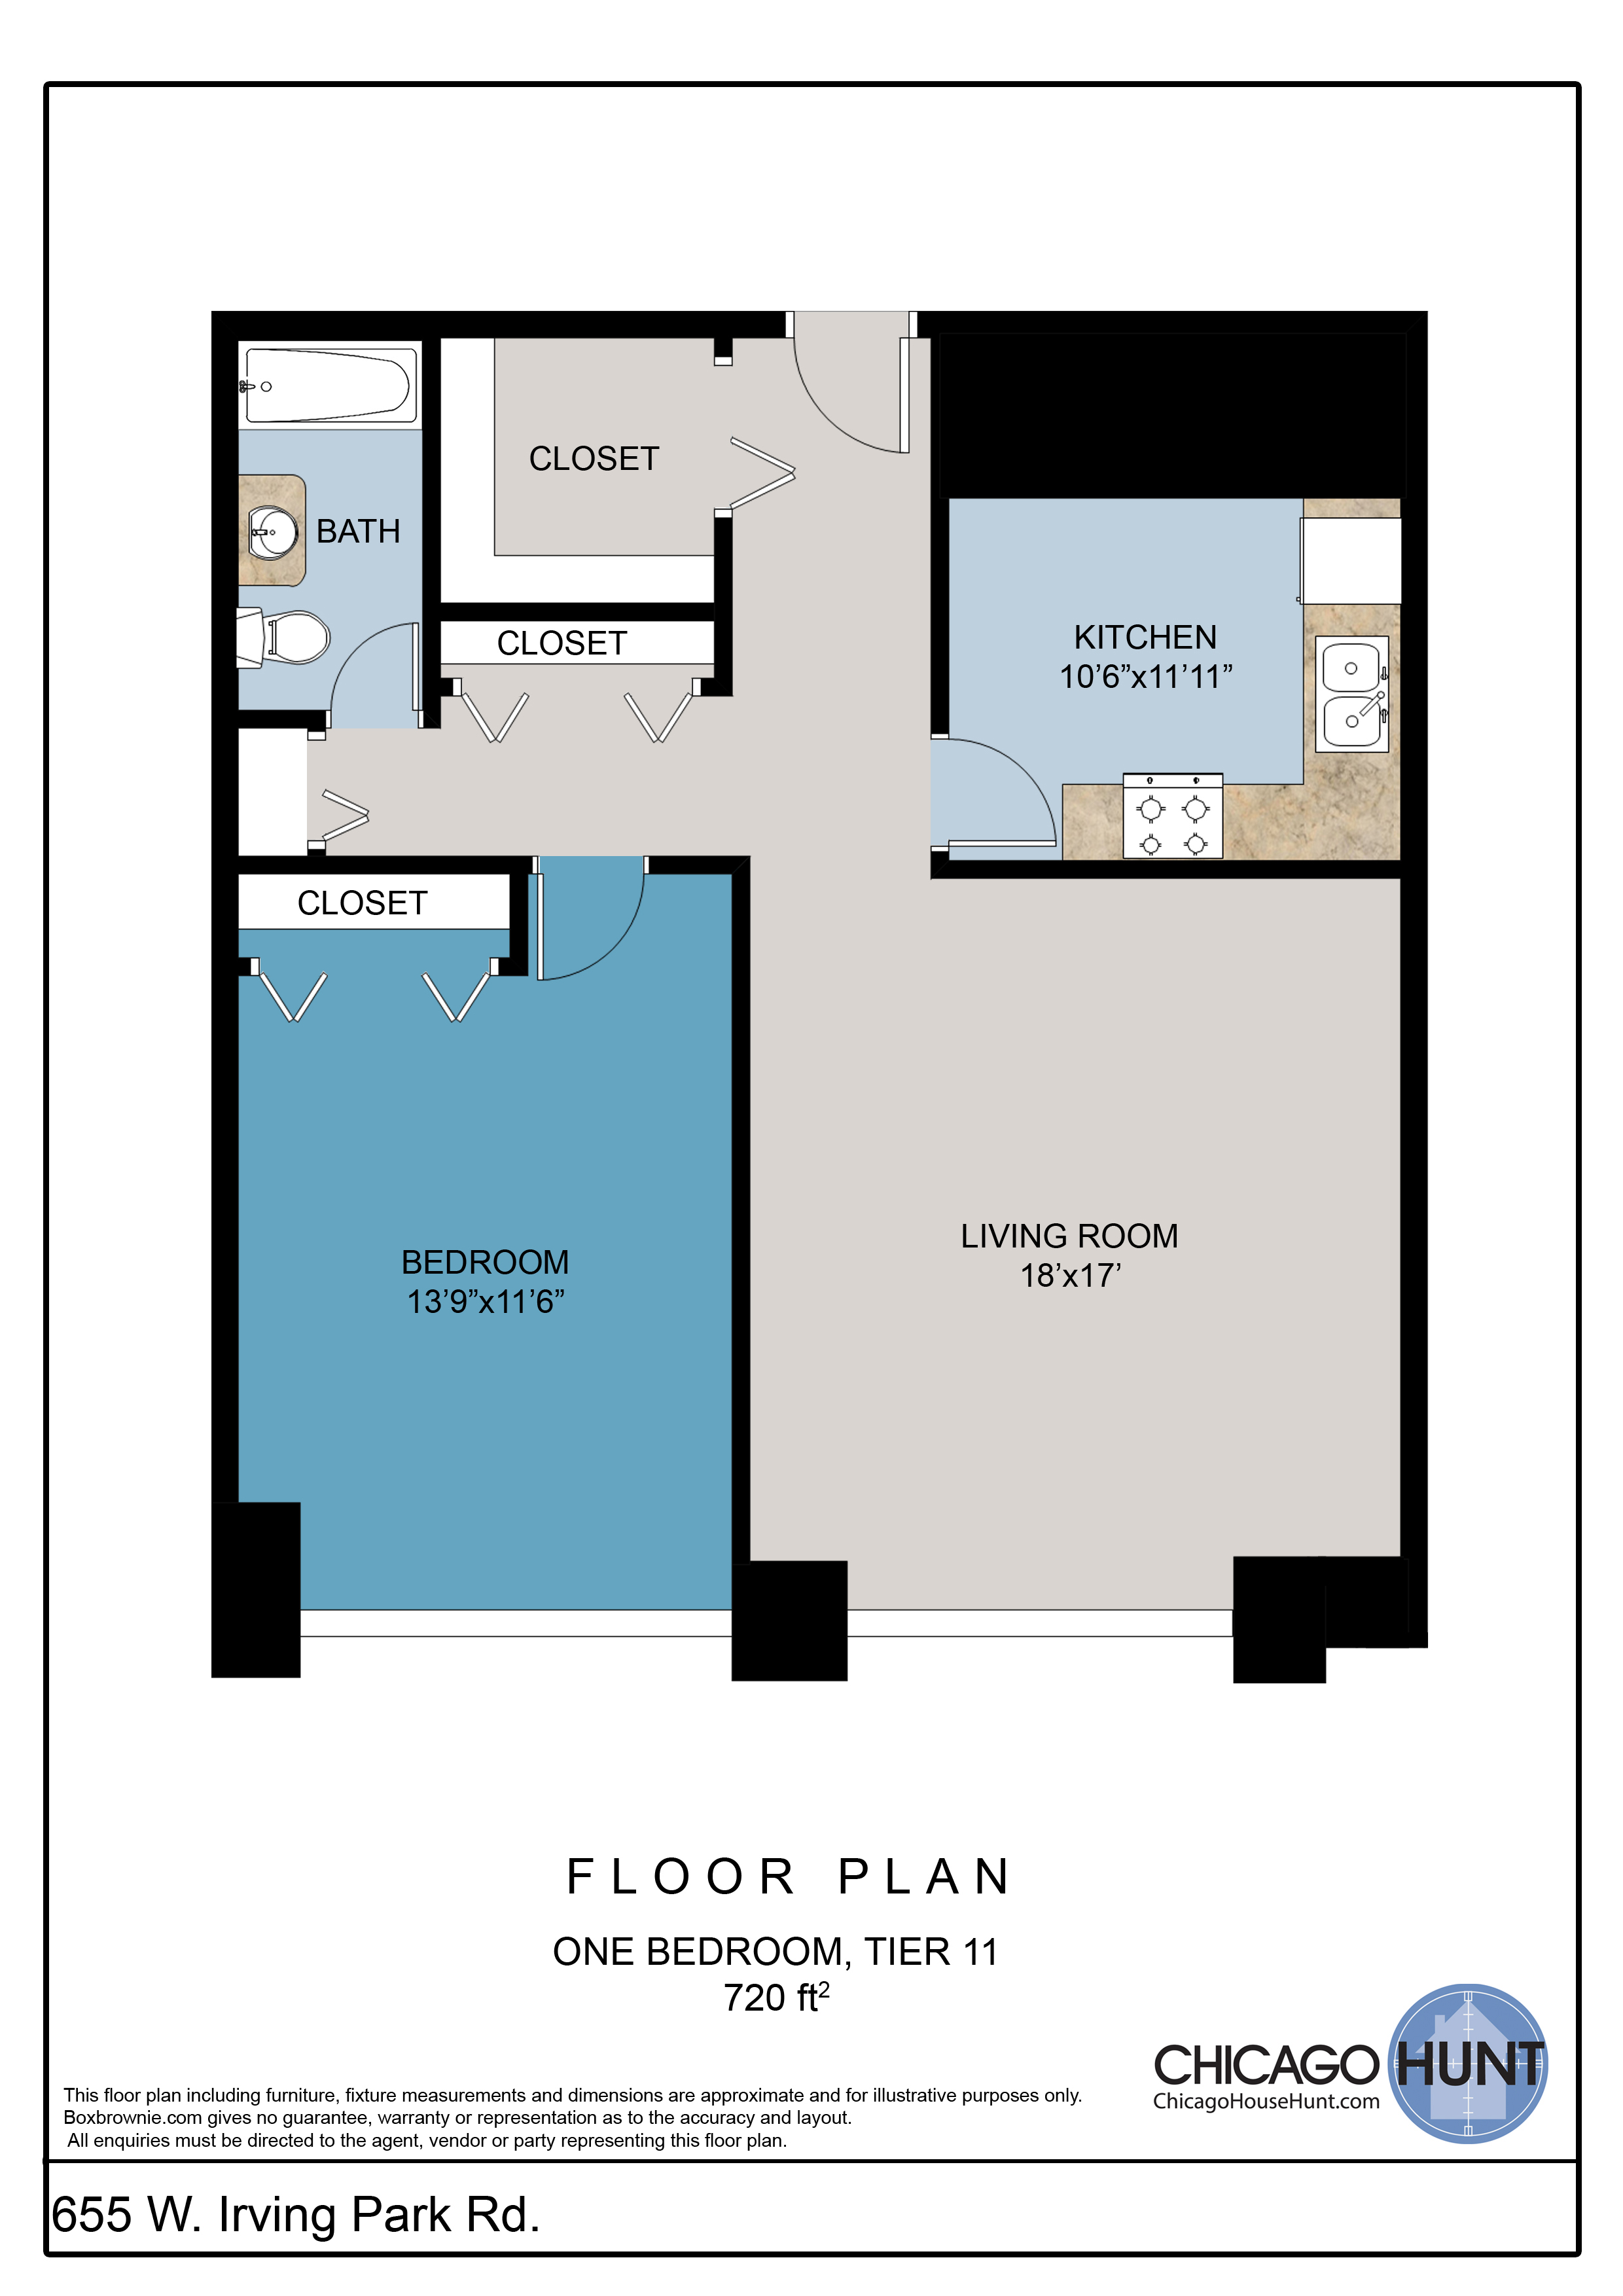 655 Irving Park, Park Place Towere - Floor Plan - Tier 11